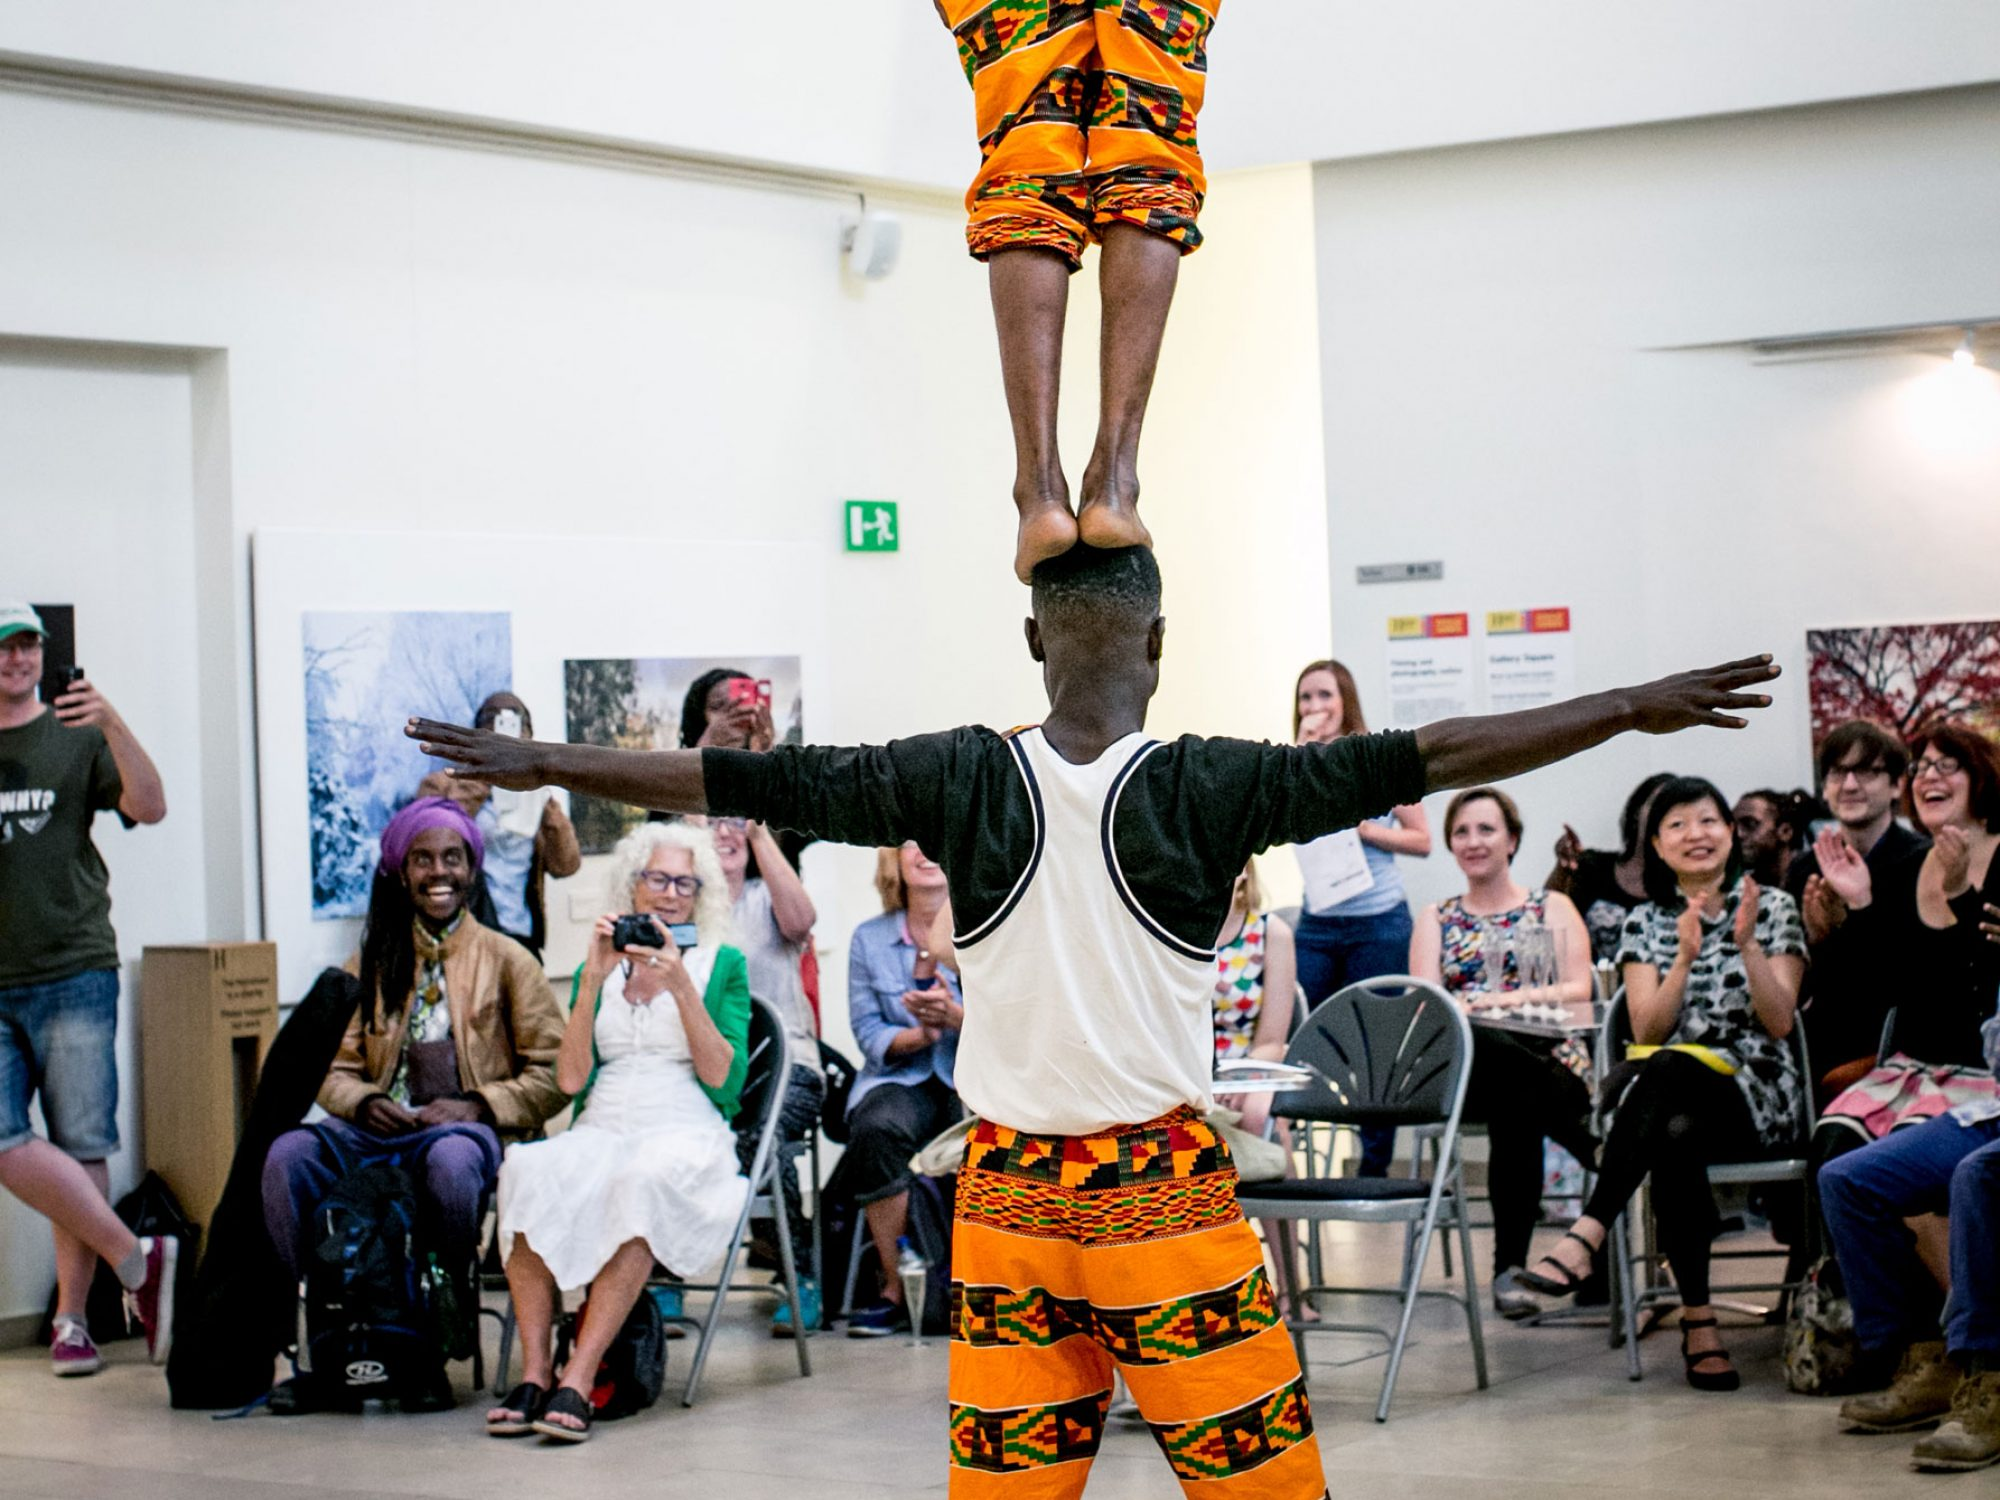 One performer stands on a second performers head in a large white airy room. They are being watched by an audience on a balcony and on their level.